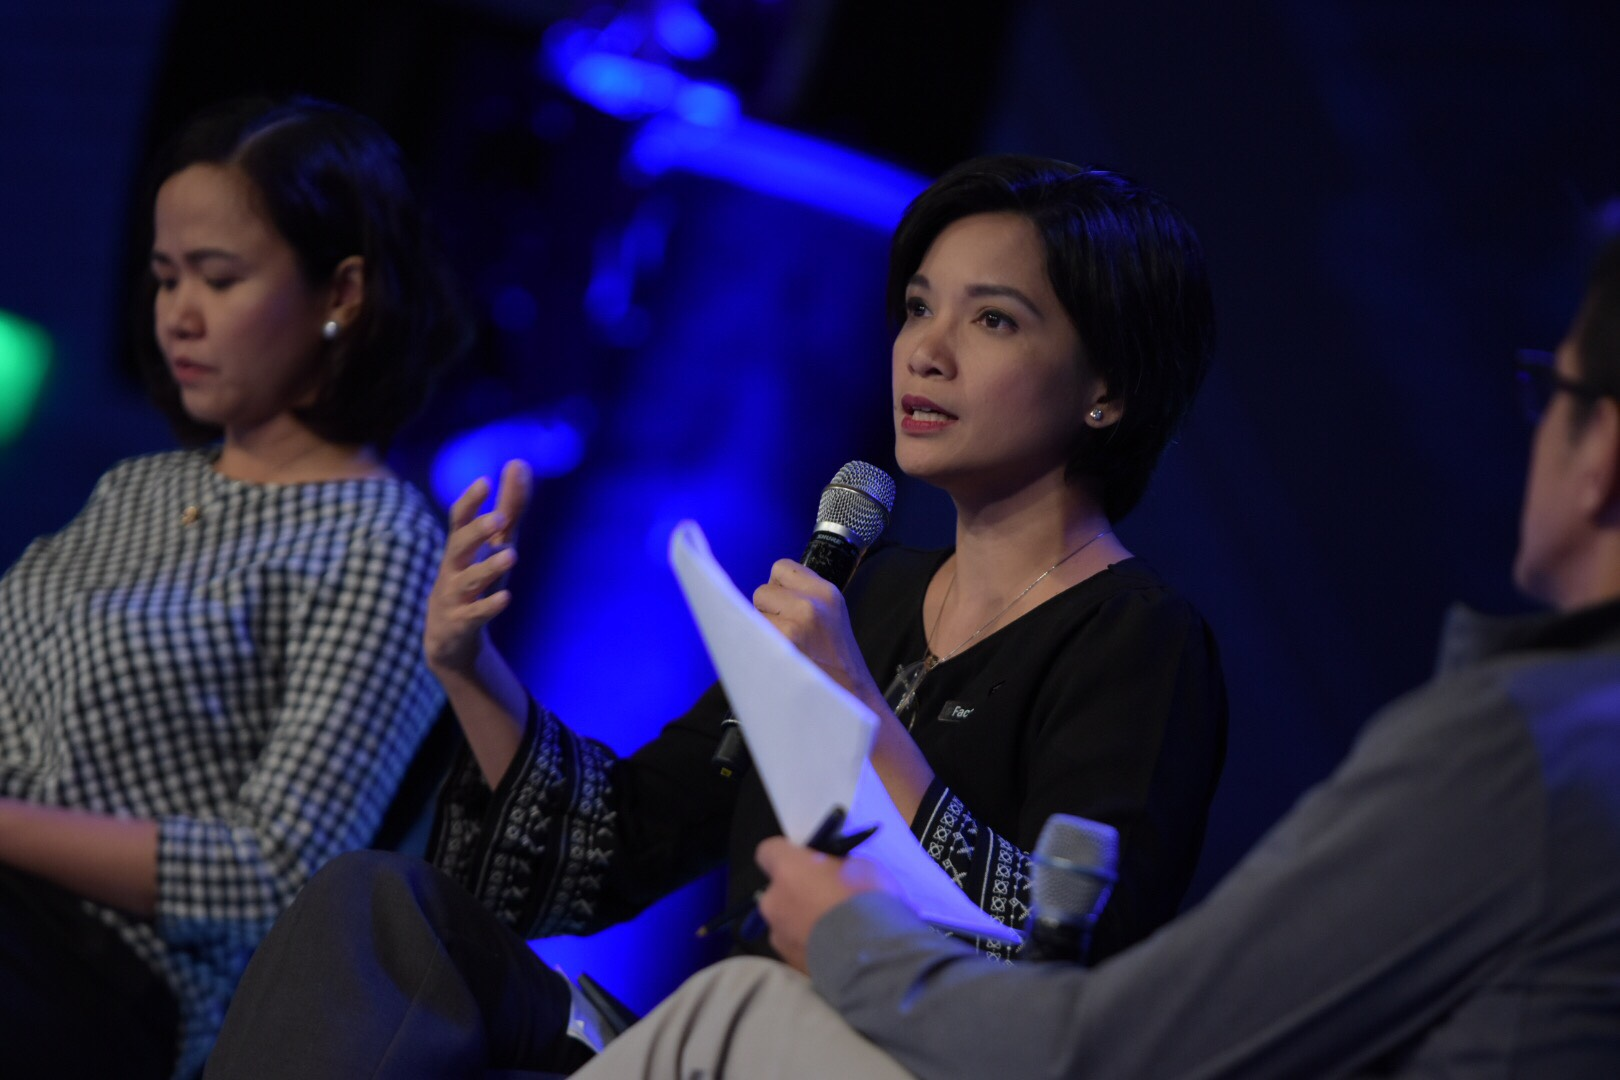 FAKE NEWS. Professor Clarissa David of the University of the Philippines discusses the importance of fighting fake news in a 'post-truth' world. Photo by LeAnne Jazul/Rappler